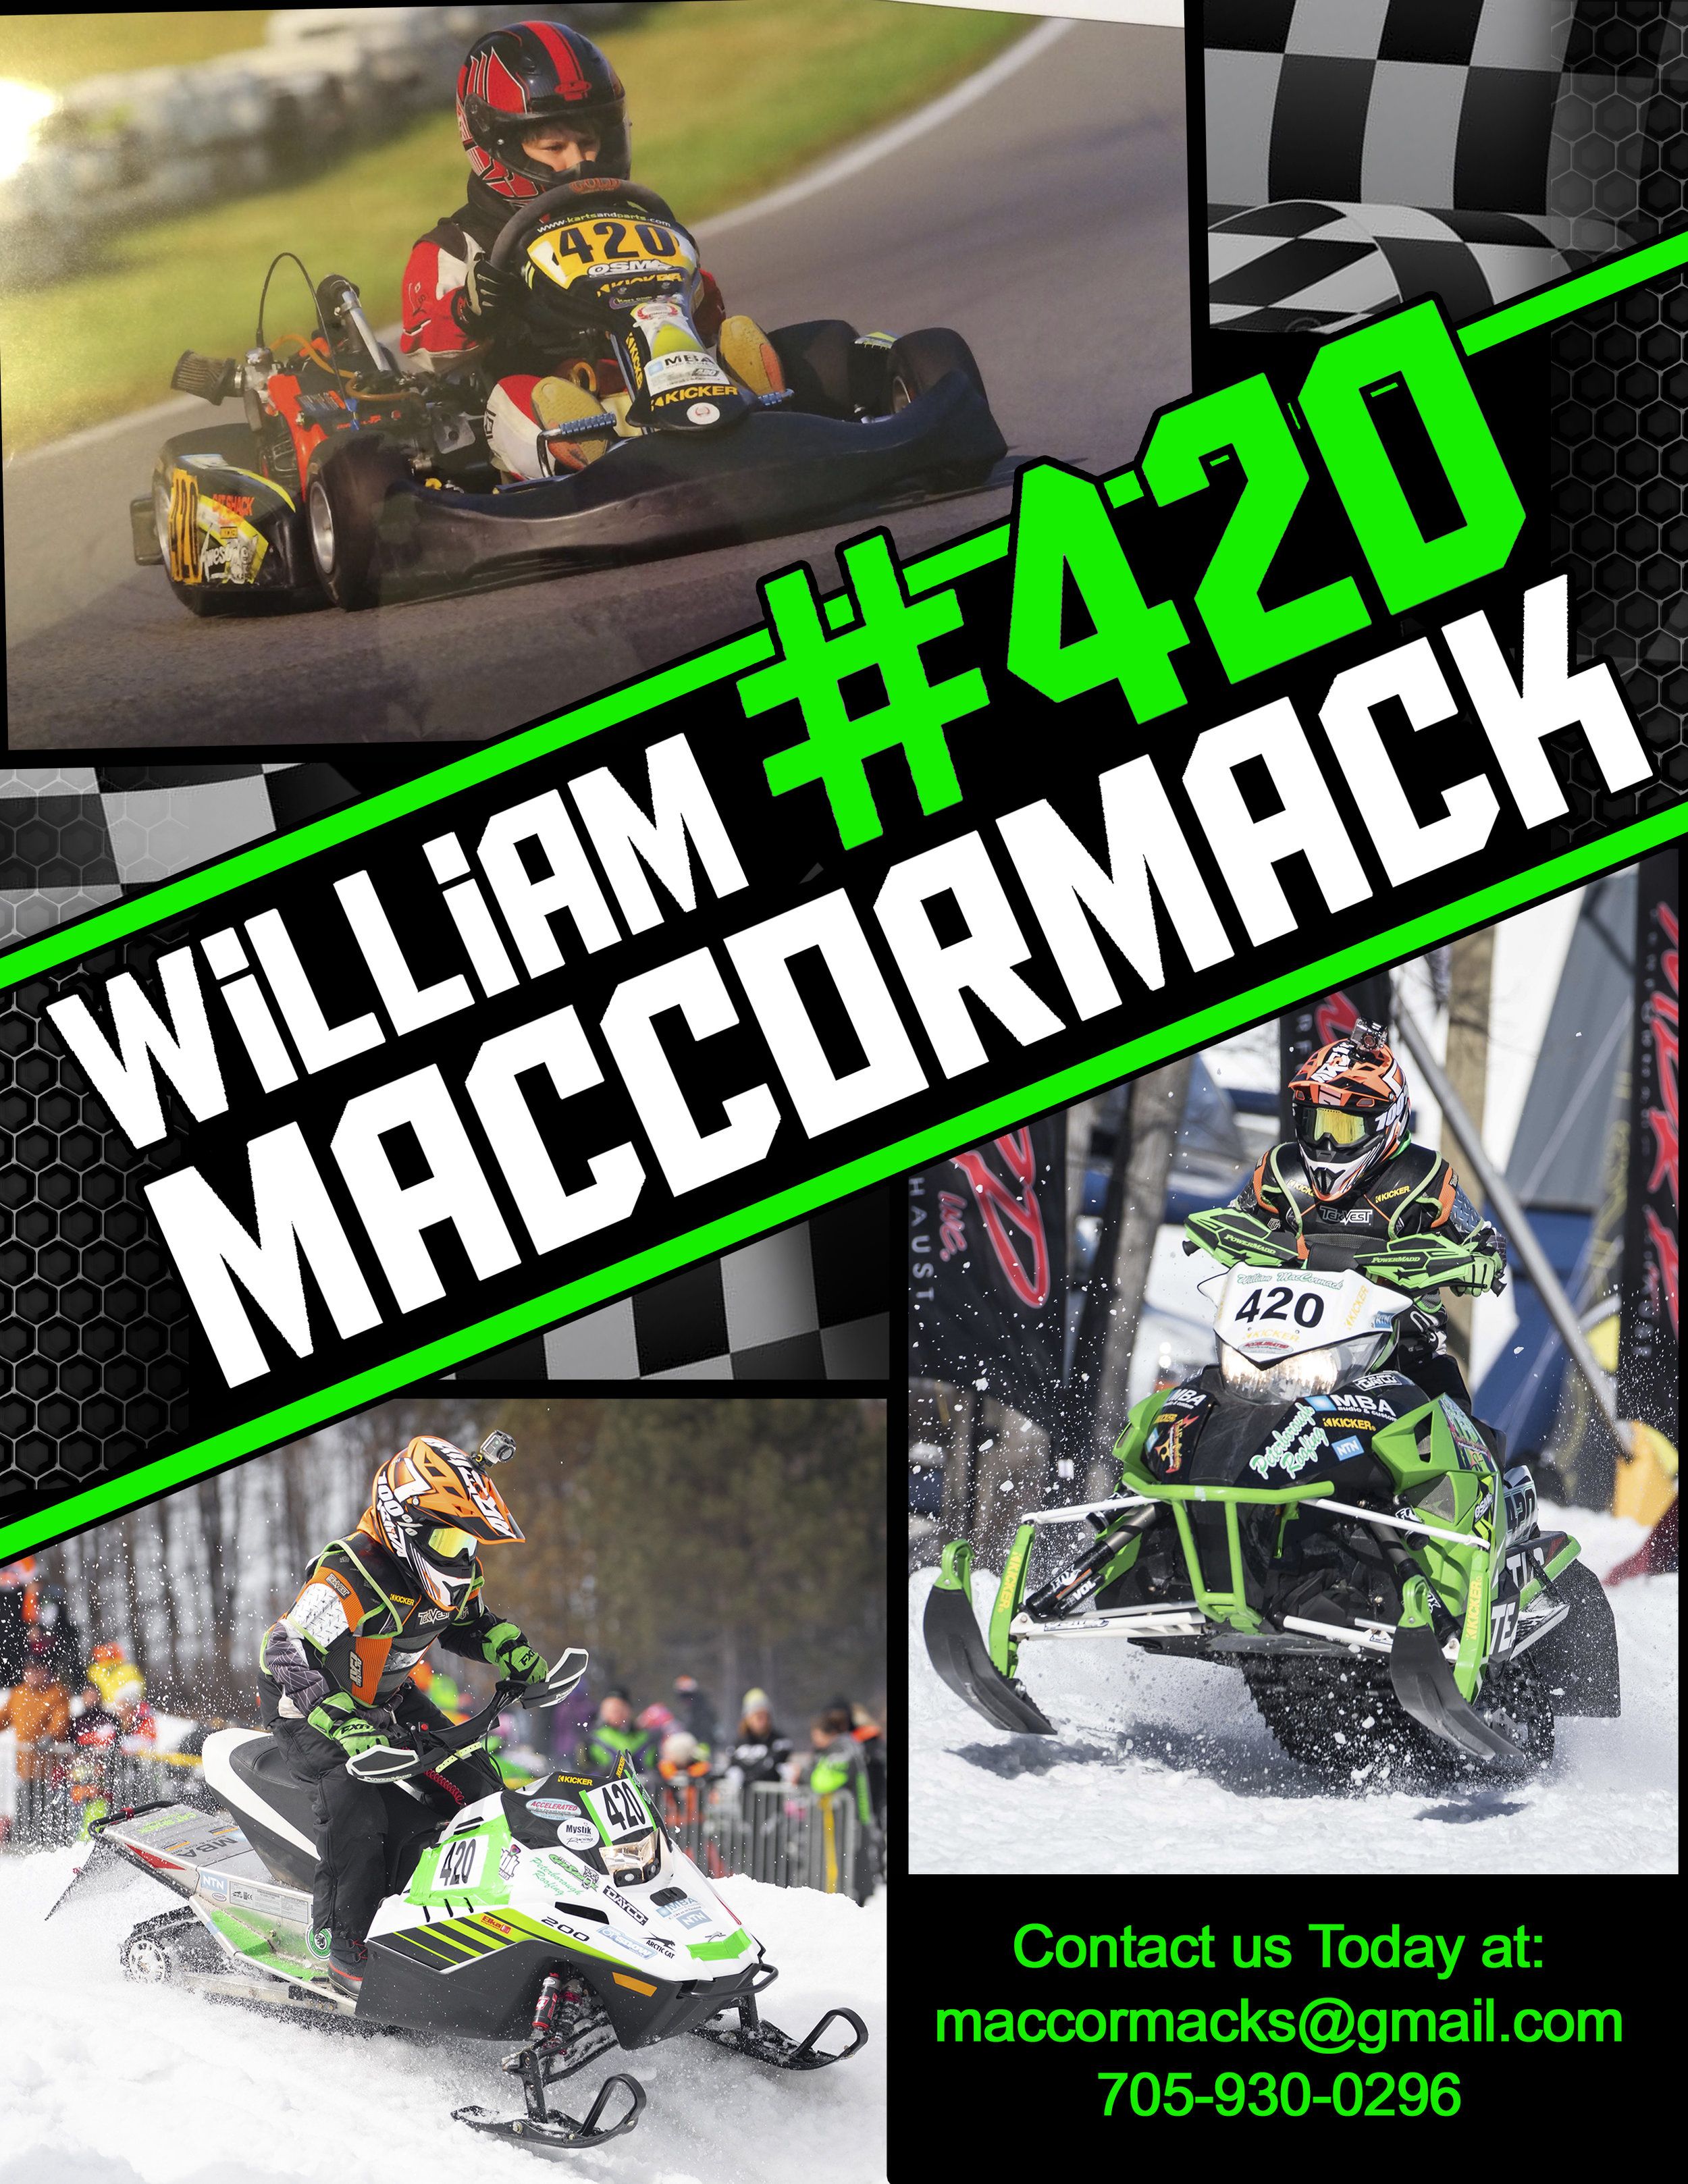 COVERMacCormackWilliamMBAAudioSponsorshipPackage2019.jpg